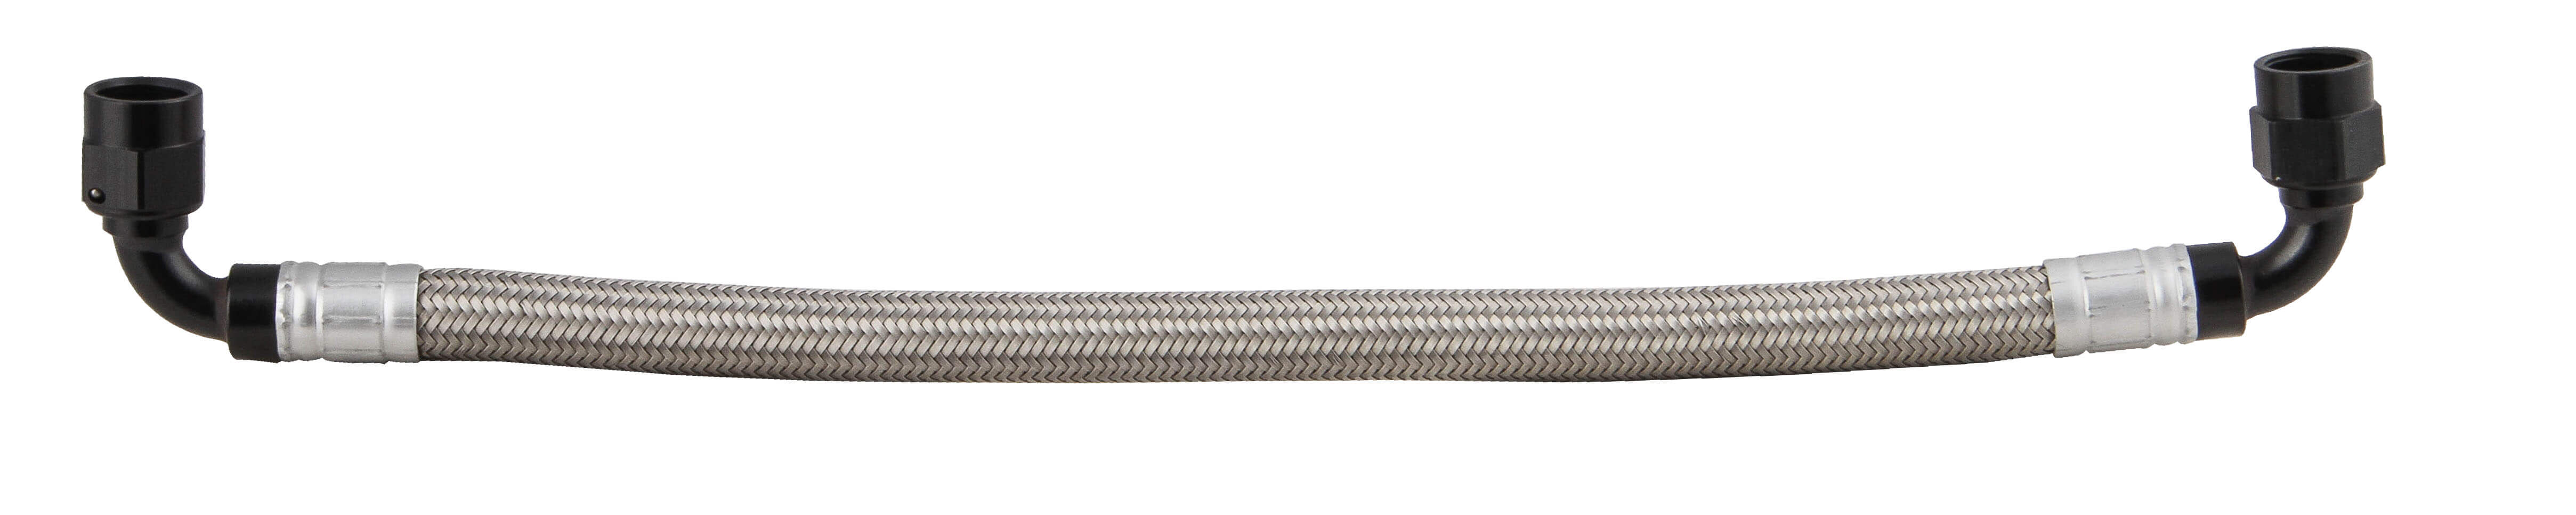 Earls GM LS Fuel Rail Cross-Over Hose -6 Stainless Braided Hose